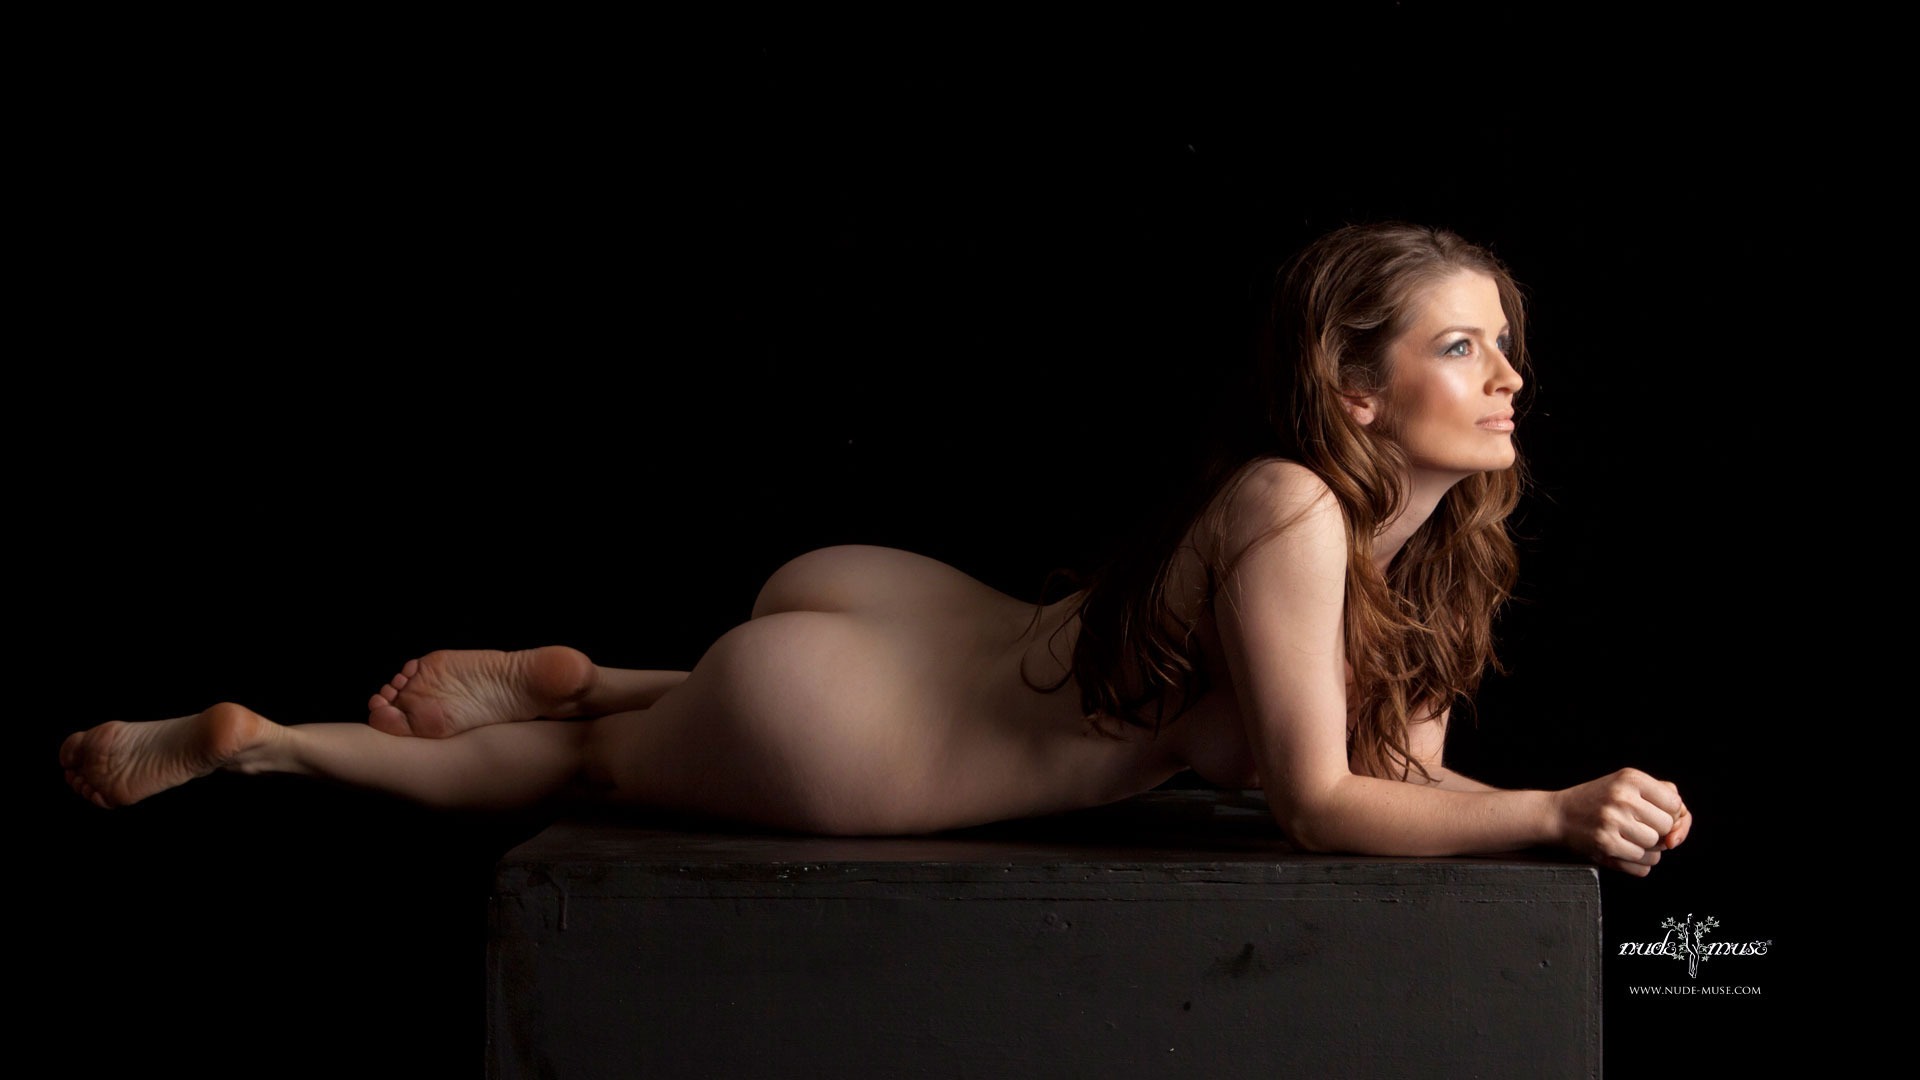 muse nude the